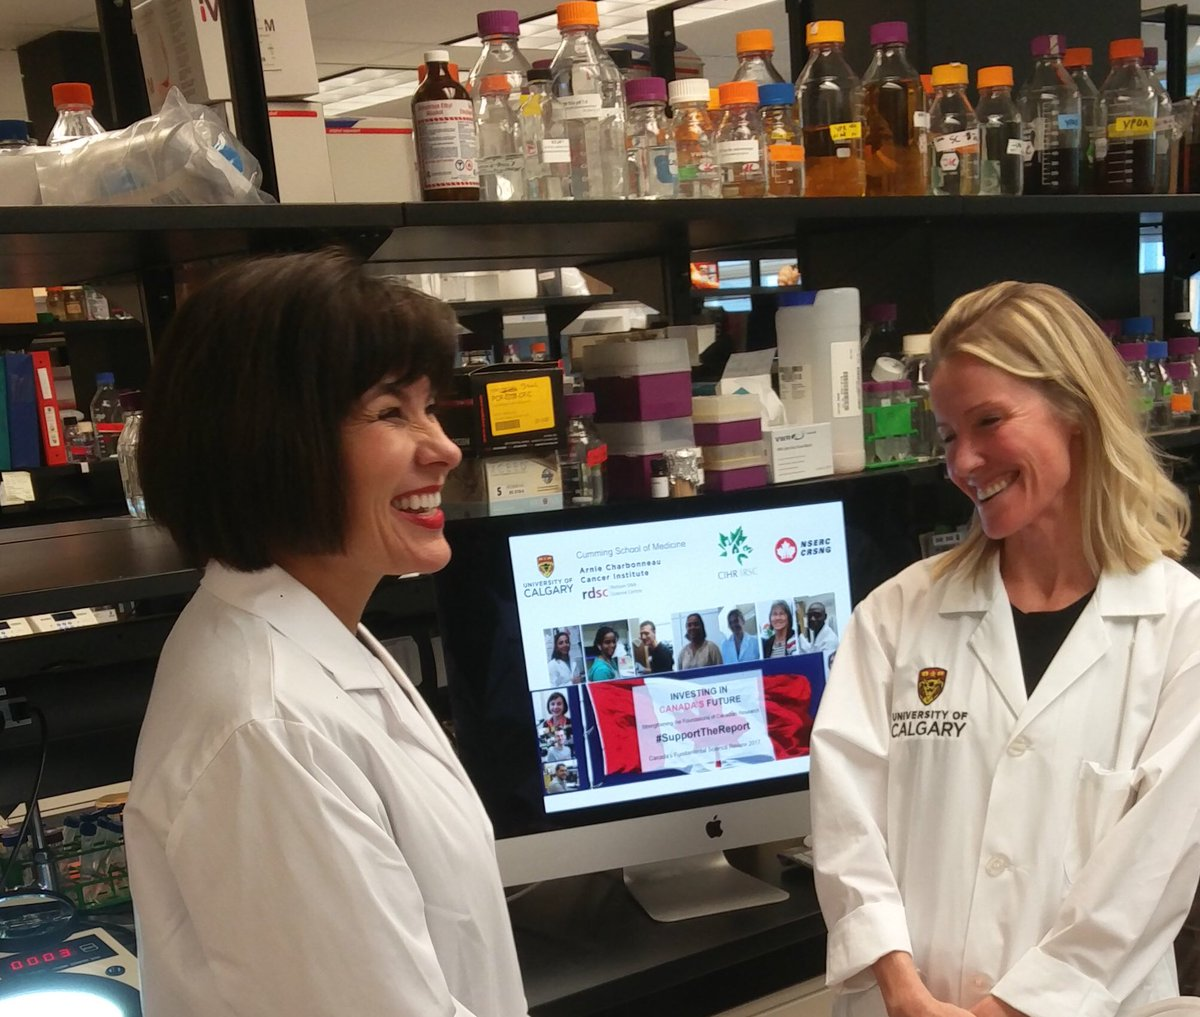 Health Minister Taylor visited my YEAST lab today at U of Calgary! We talked on the importance of Fundamental Science. #supportthereport <br>http://pic.twitter.com/Af6aldH4tN